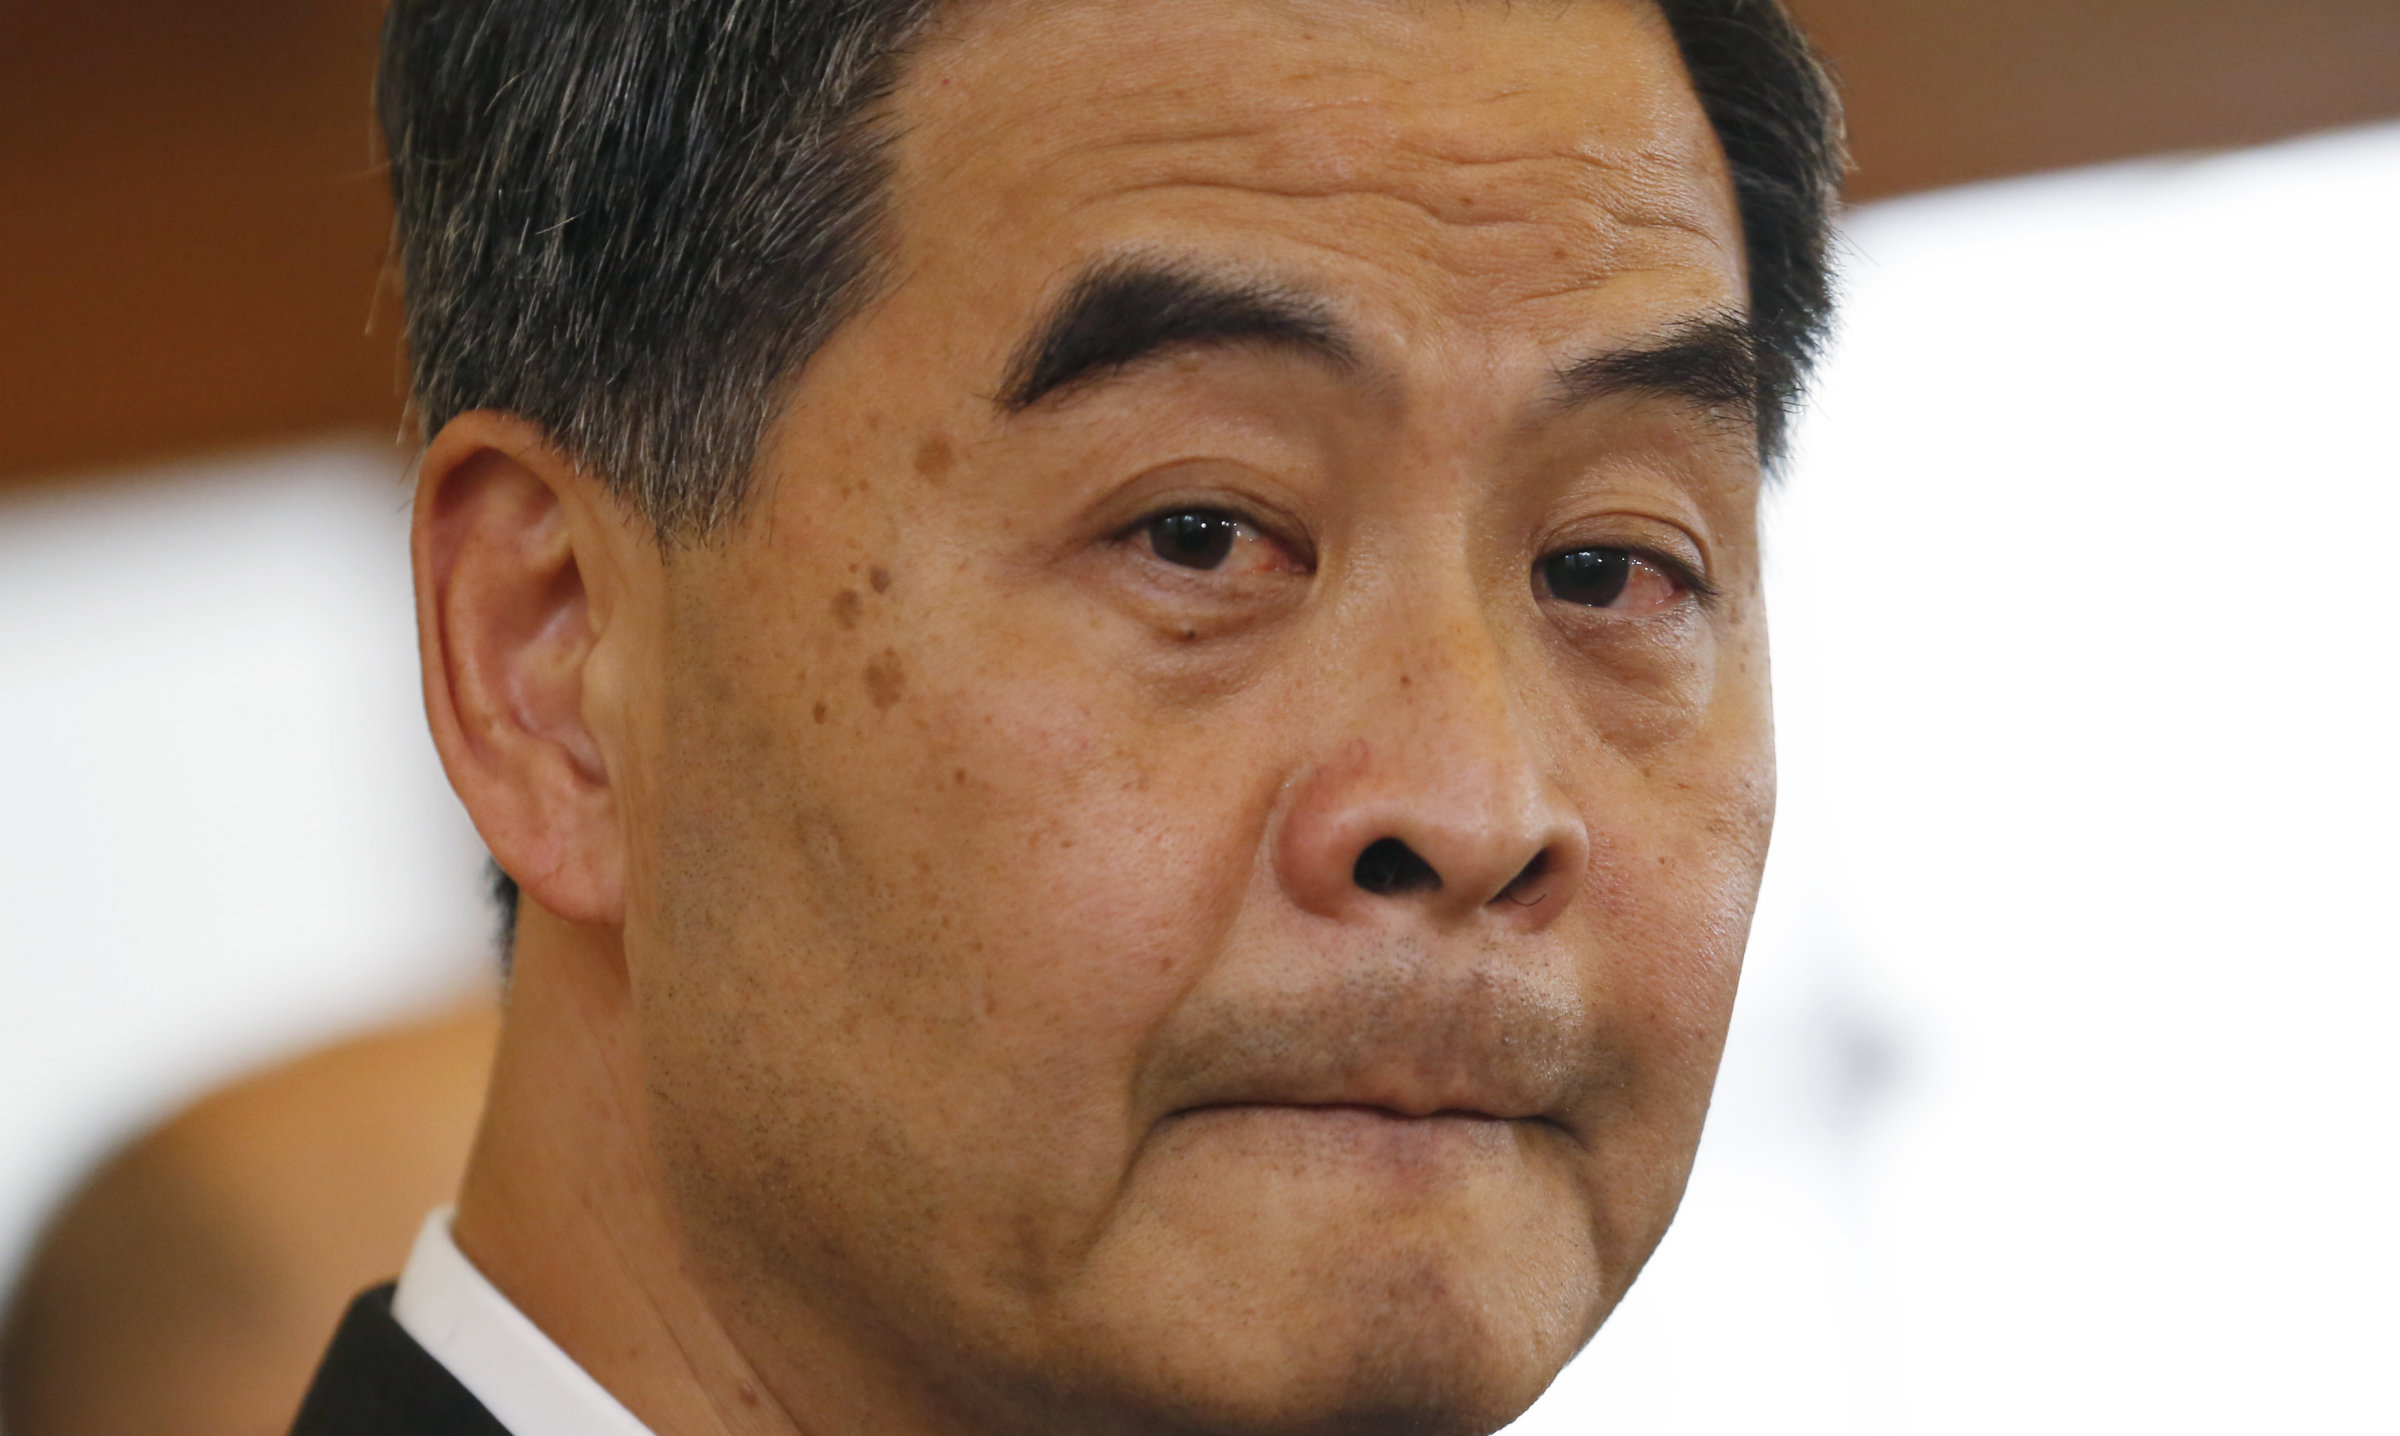 Hong Kong's chief executive, CY Leung, appears to bite his lips nervously.